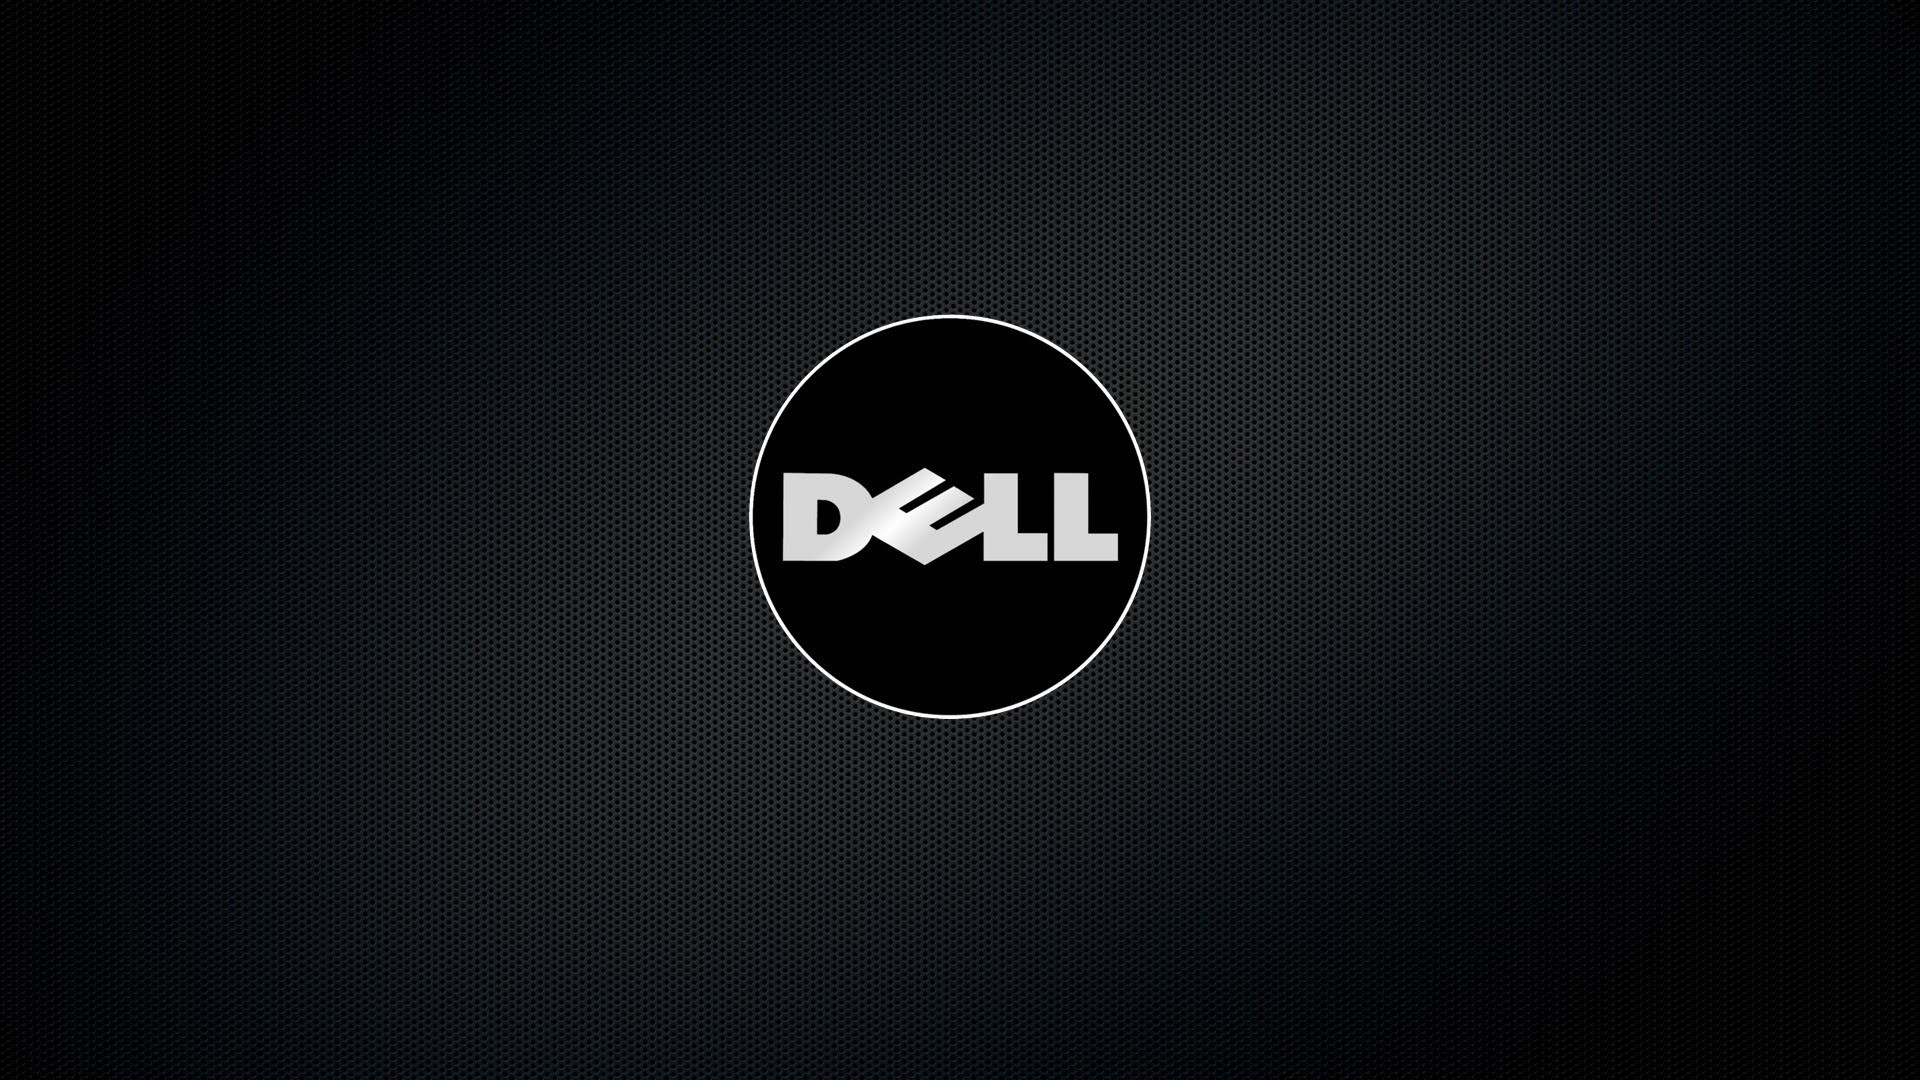 Dell Wallpaper: Dell Wallpaper Windows 10 (72+ Images